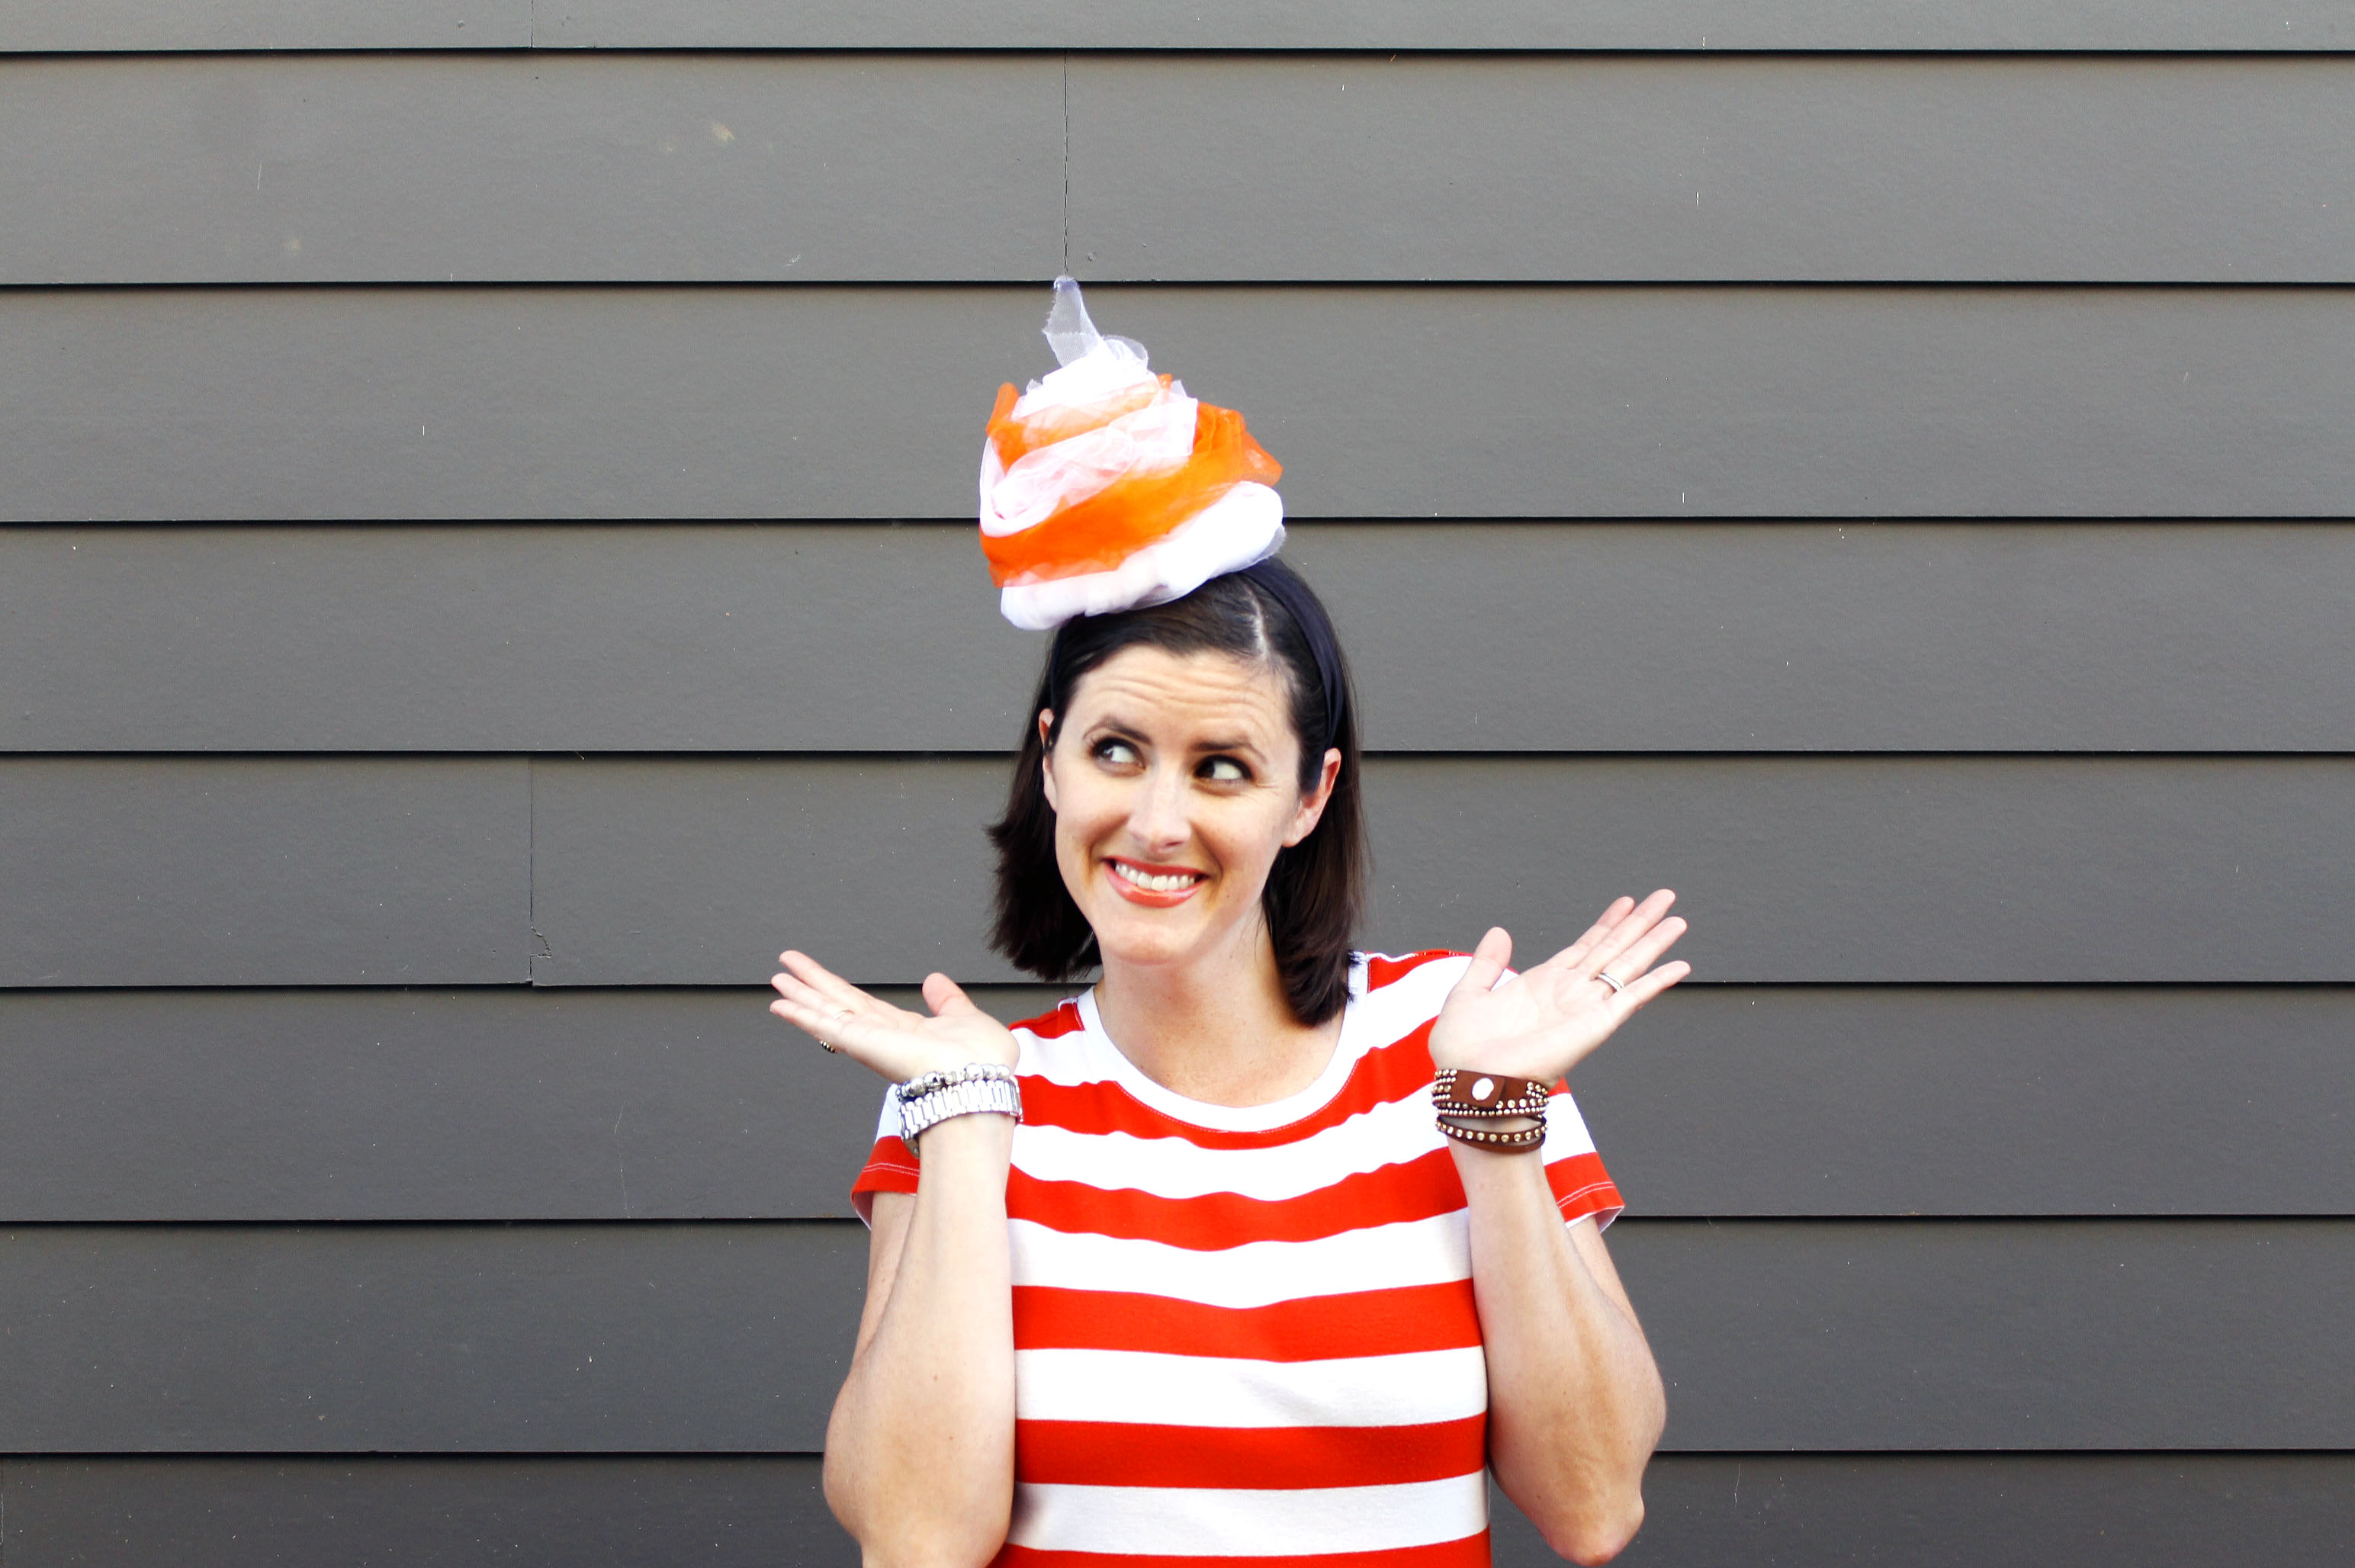 DIY Citrus Swirl Costumes bring the fun to your Halloween!